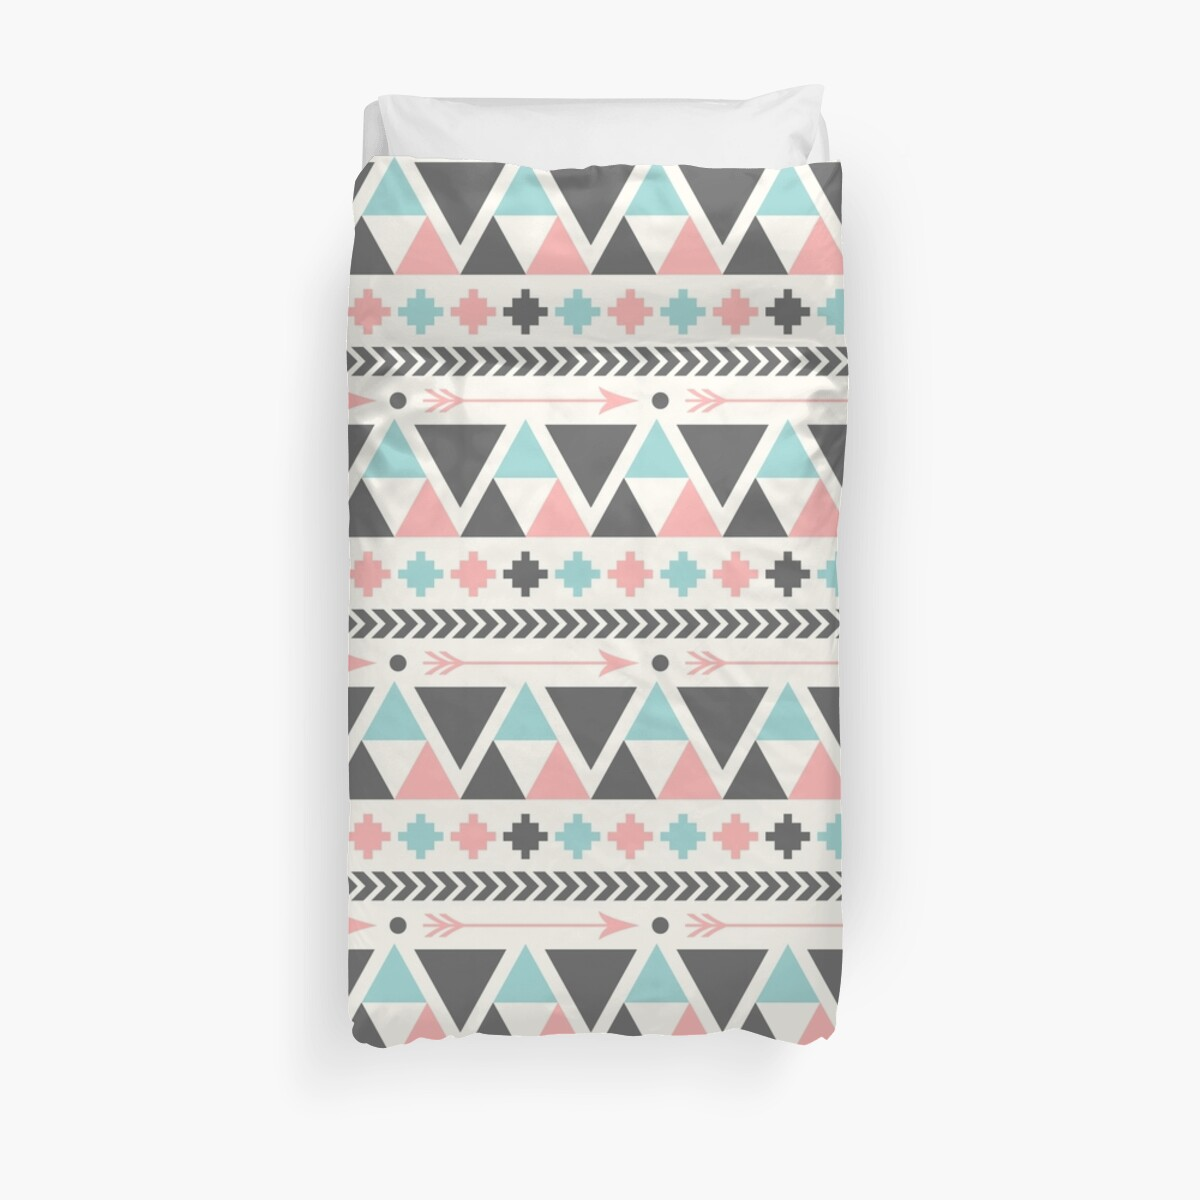 Tribal Inspired Pattern by heartlocked